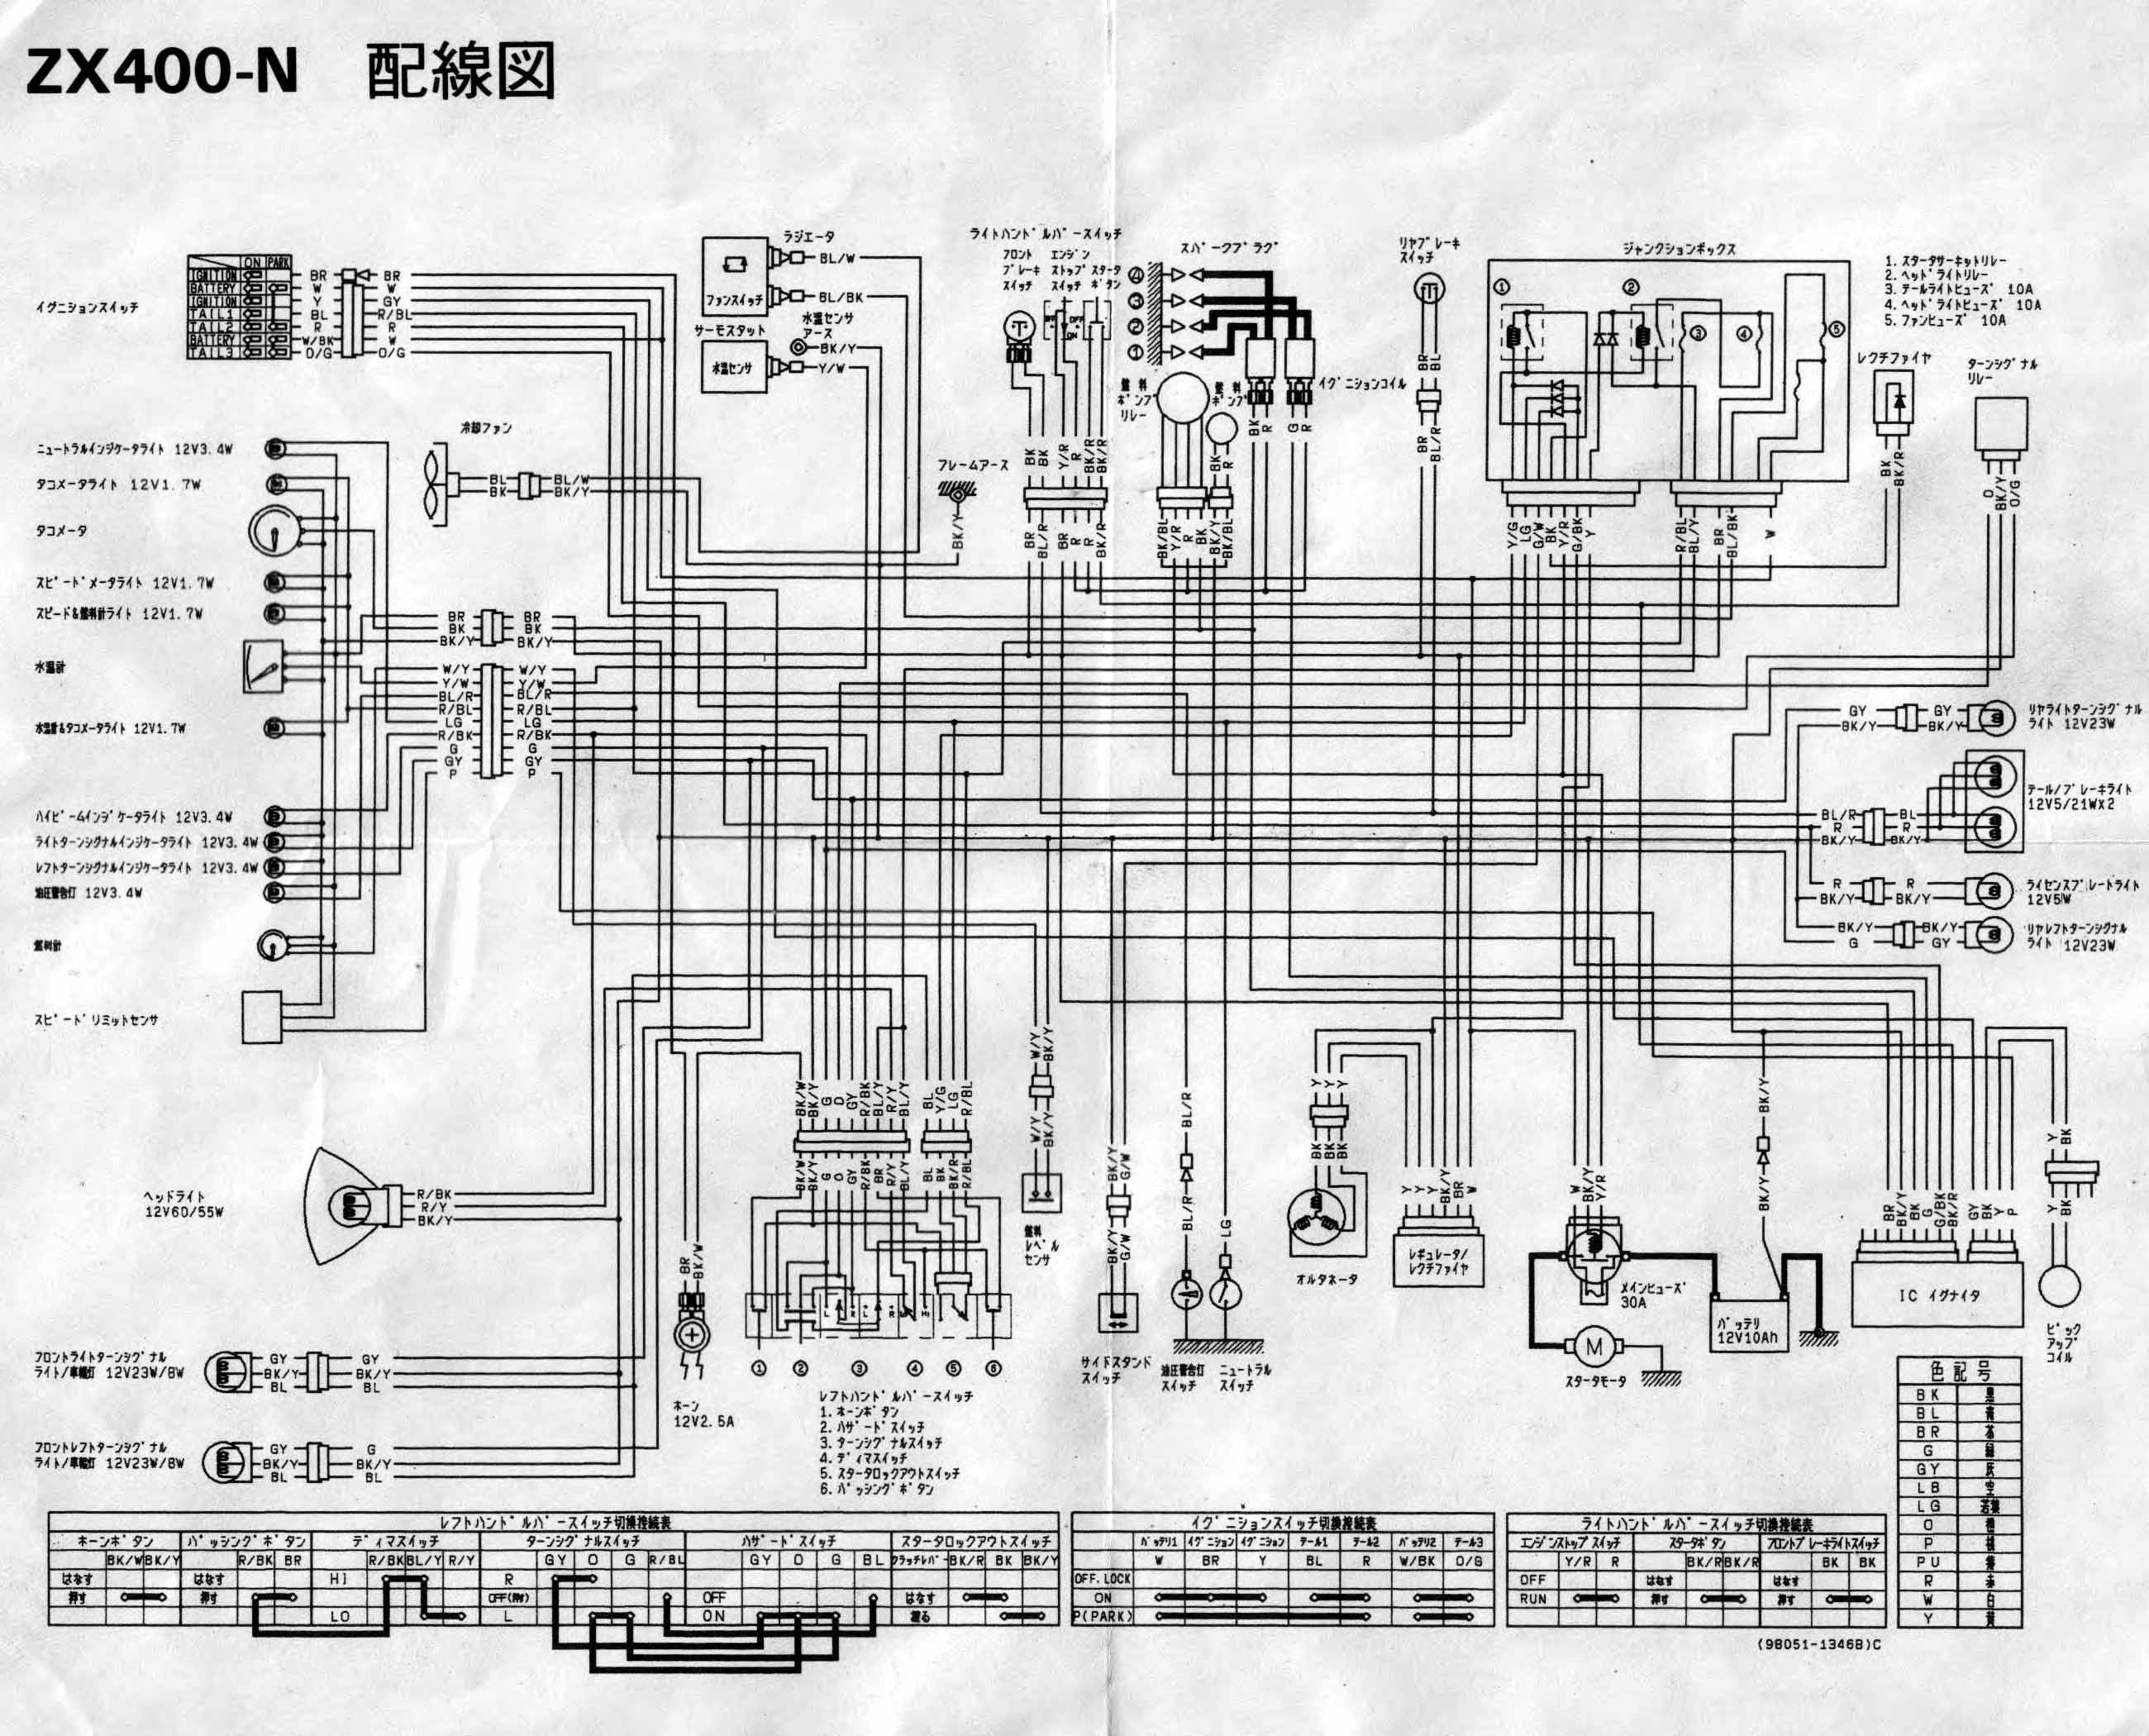 Motorcycle Wiring Diagram Pdf from www.motorcycle-manual.com